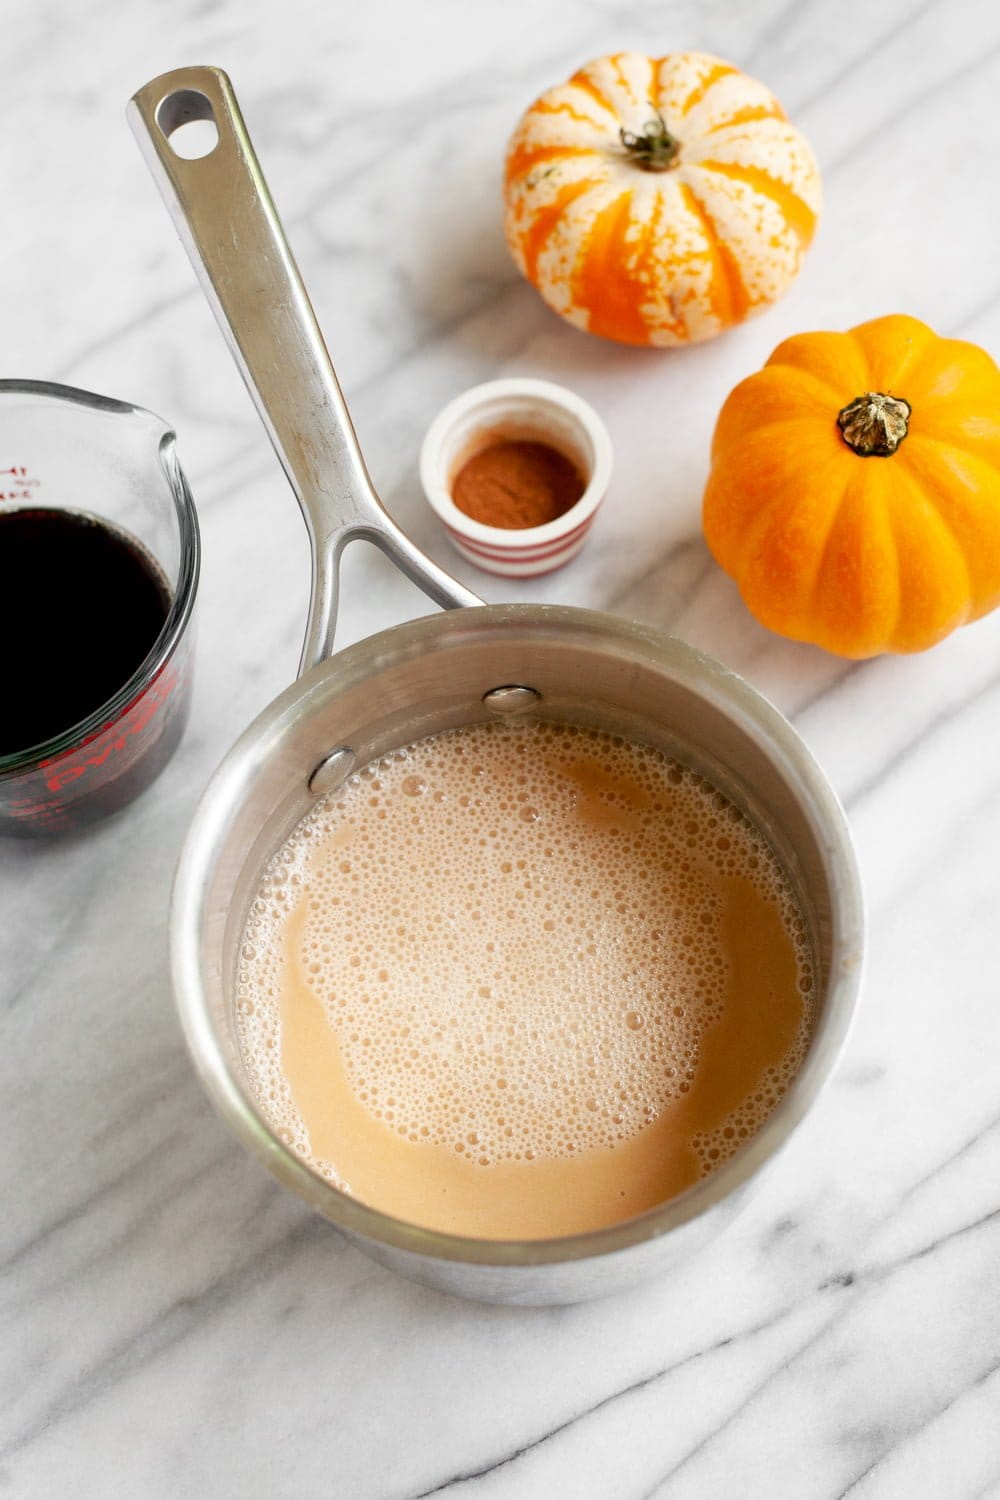 Vegan Pumpkin Spice Latte in a stainless steel saucepan, with coffee and mini pumpkins nearby